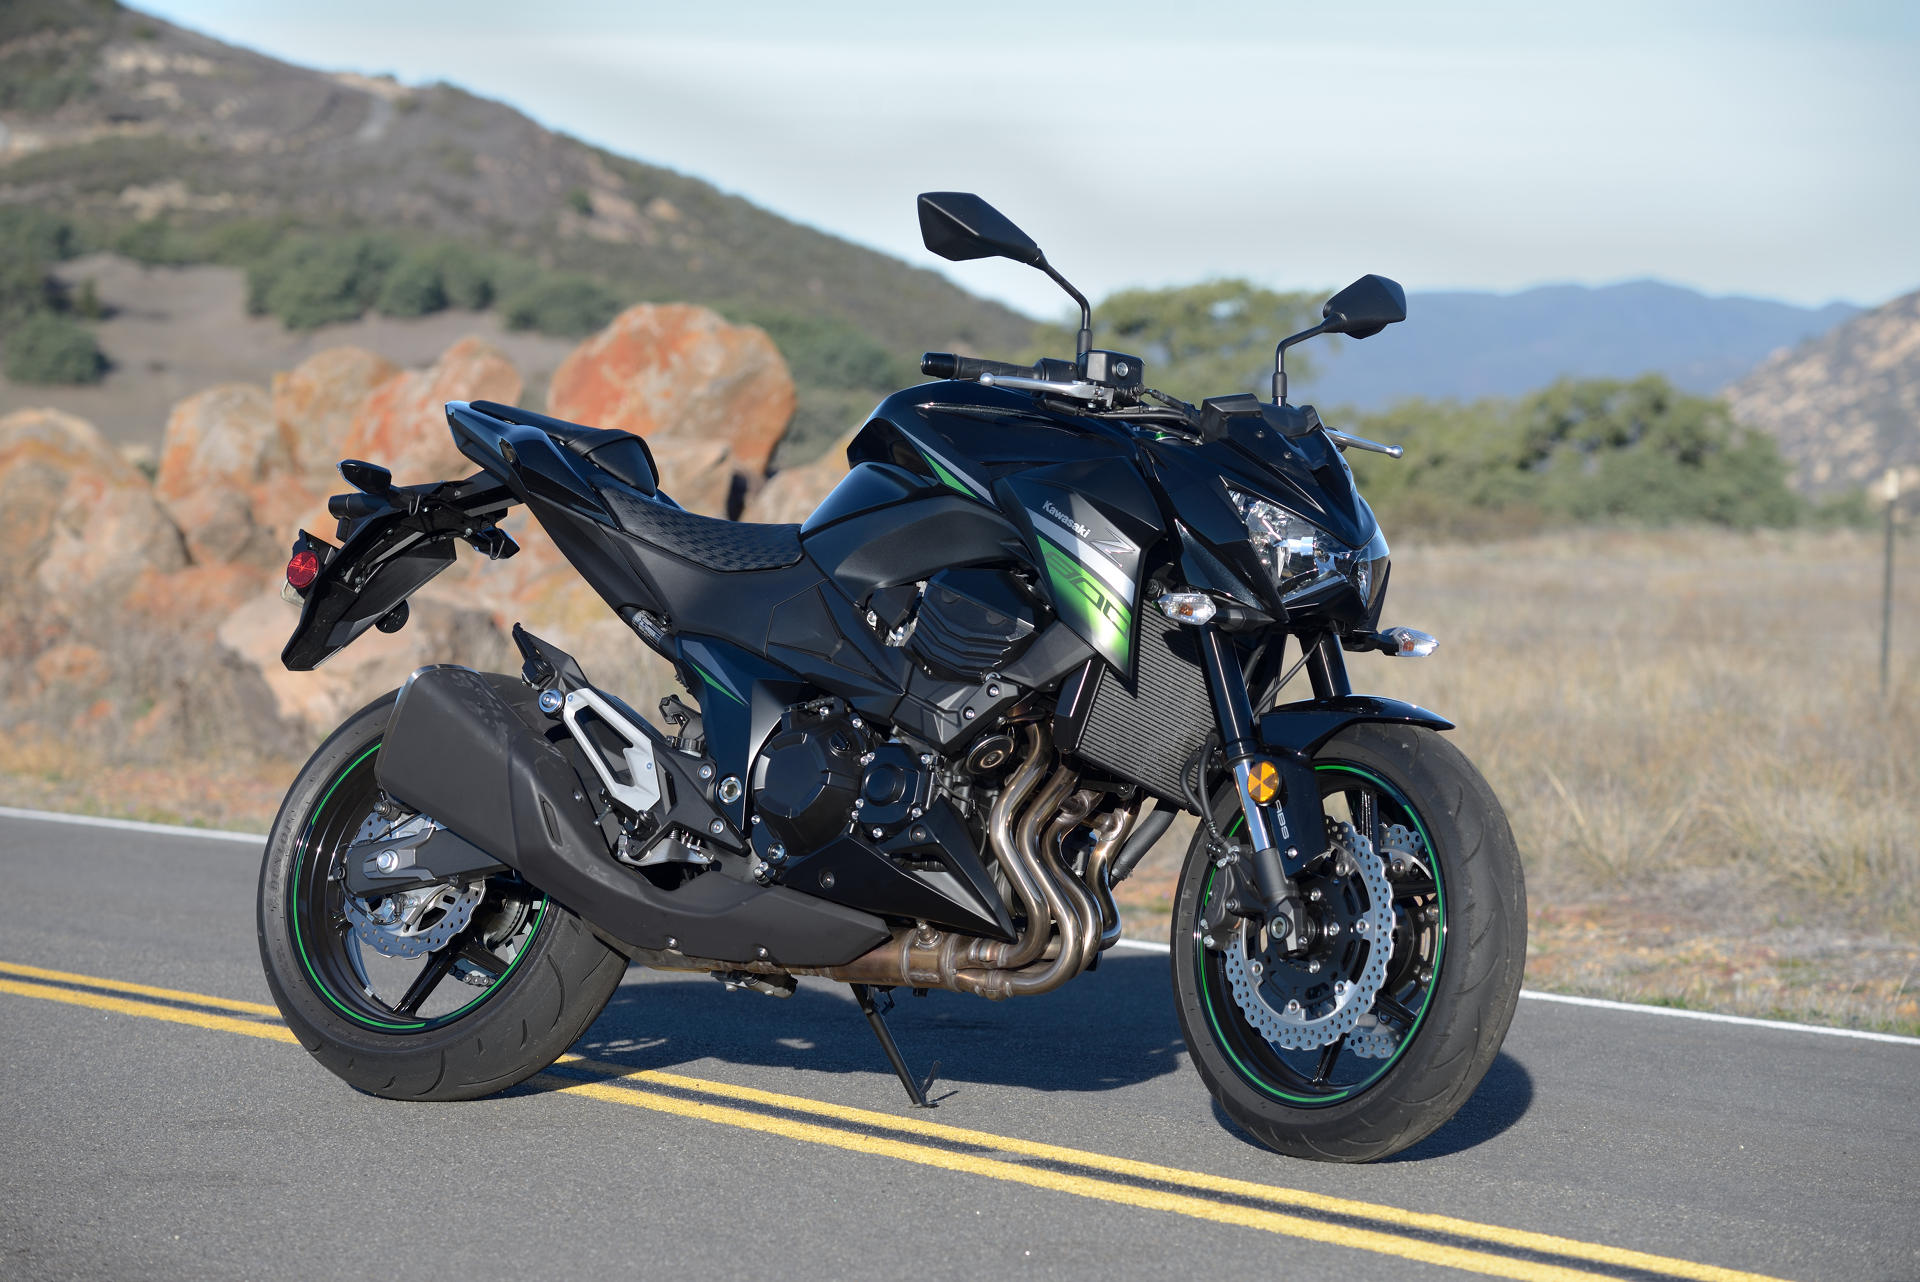 2016 Kawasaki Z800 ABS MD Ride Review MotorcycleDaily